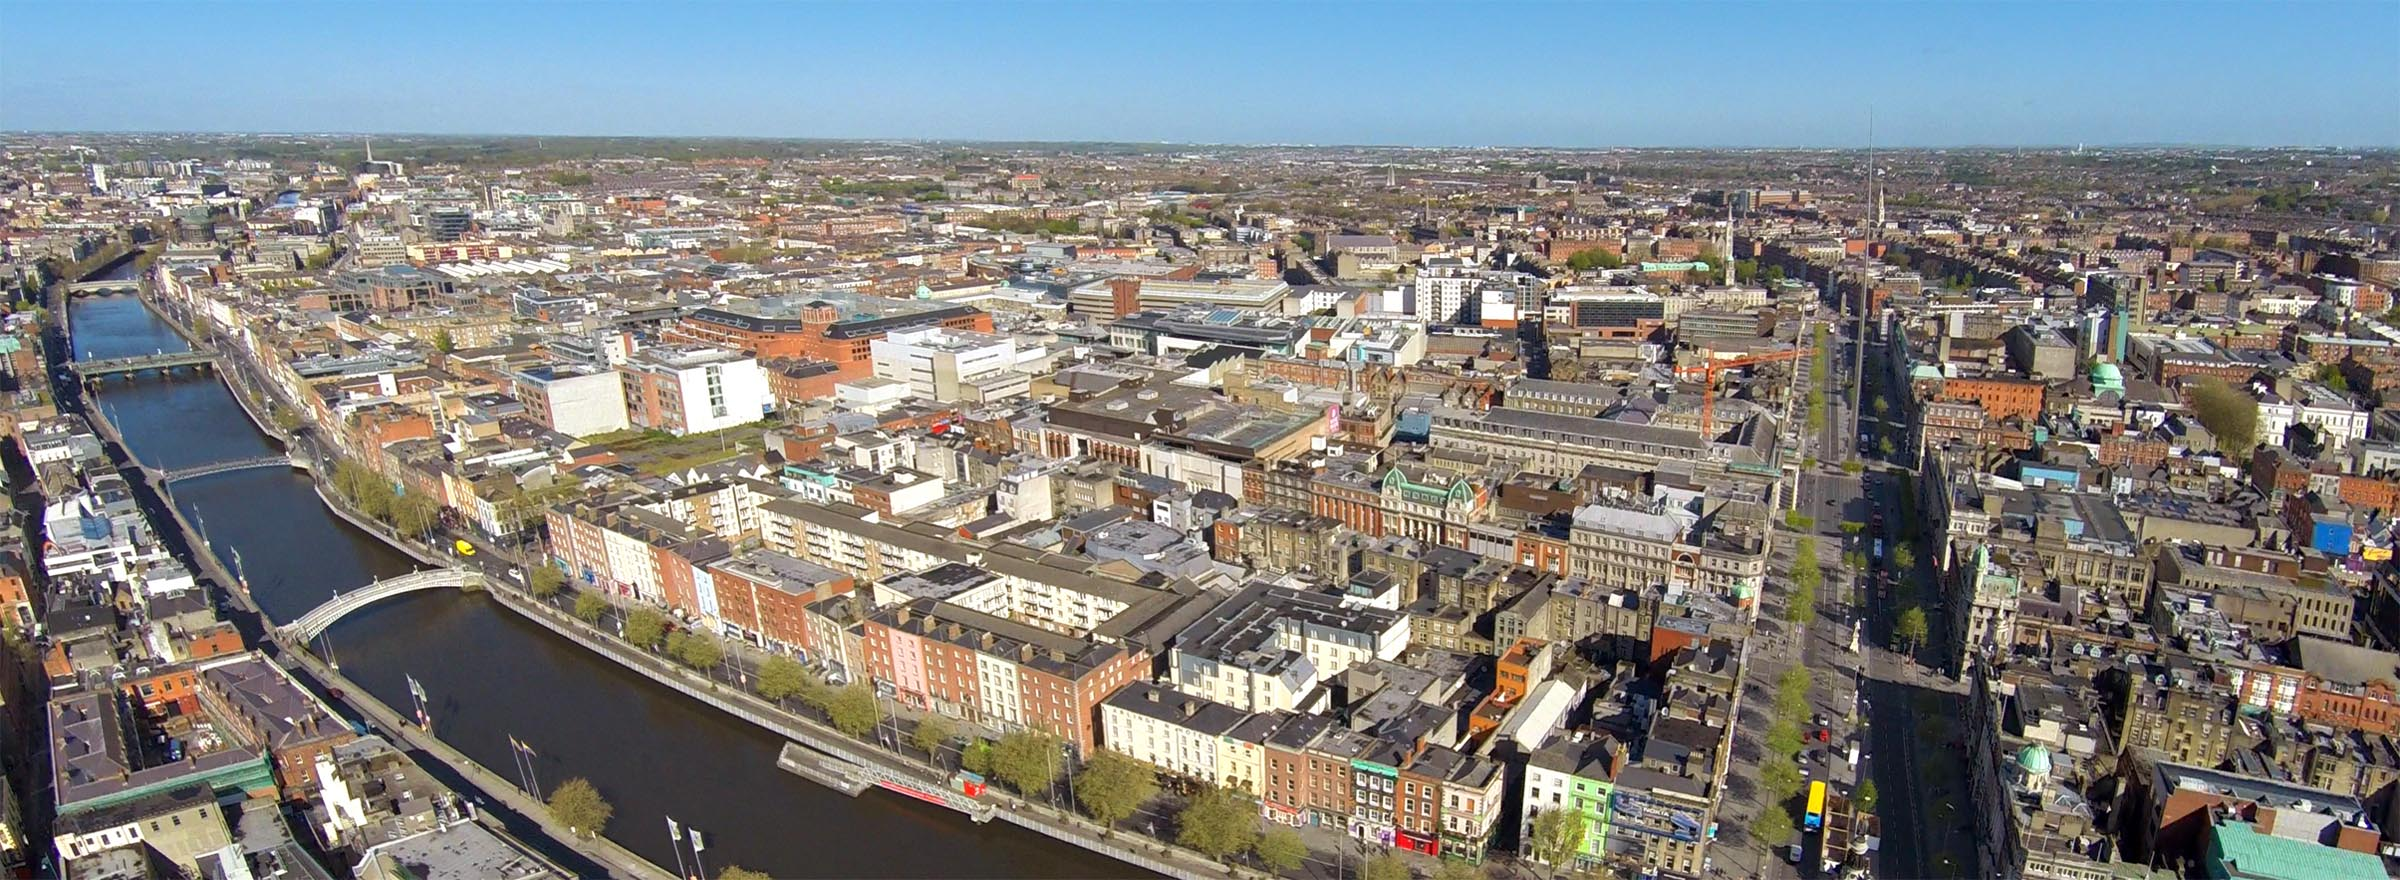 Student cities: studying in Dublin